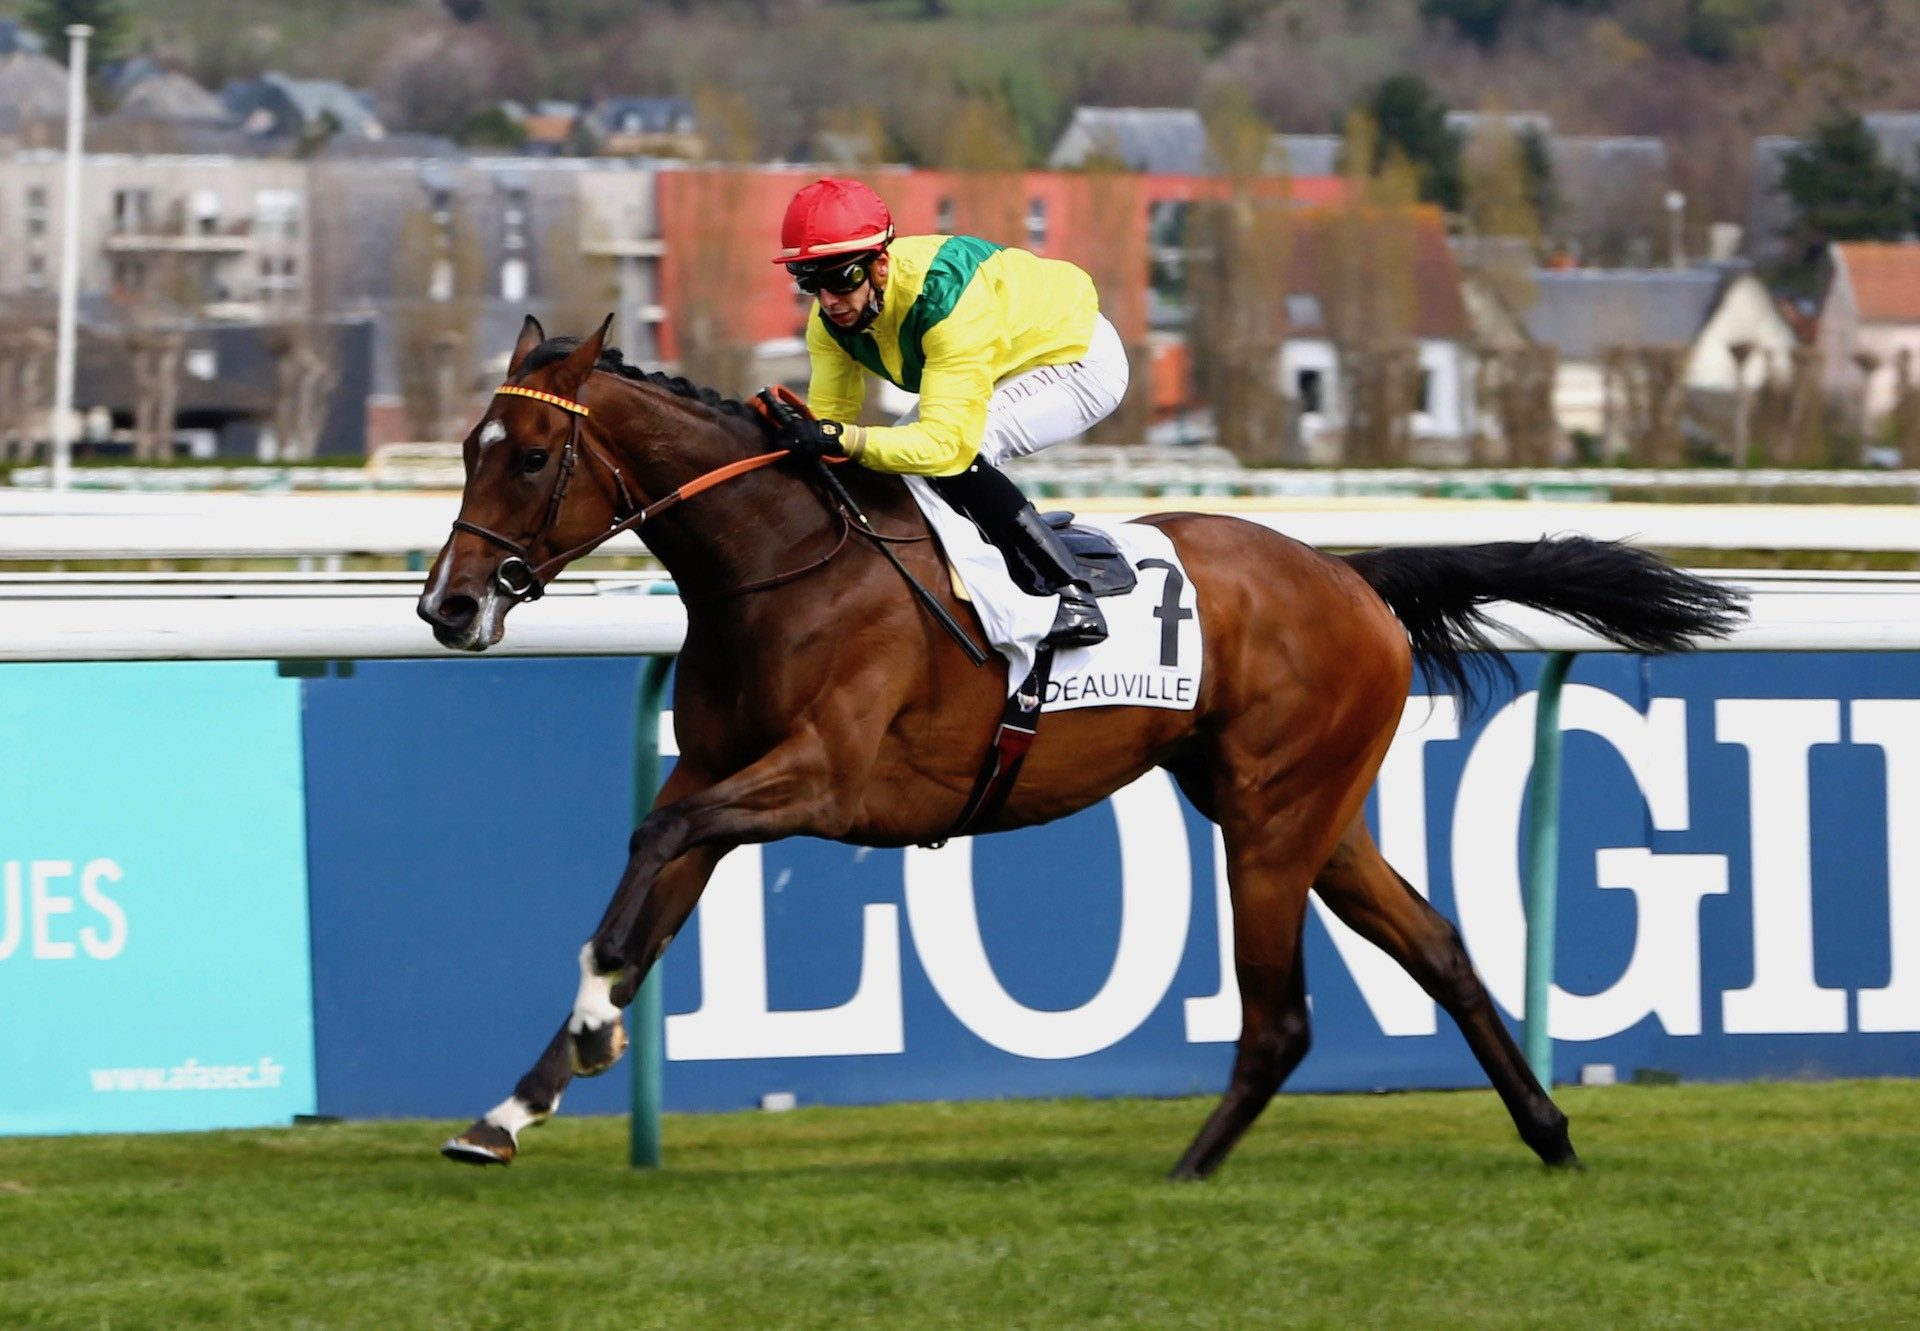 Penja (Camelot) Wins The Prix Dumka At Deauville